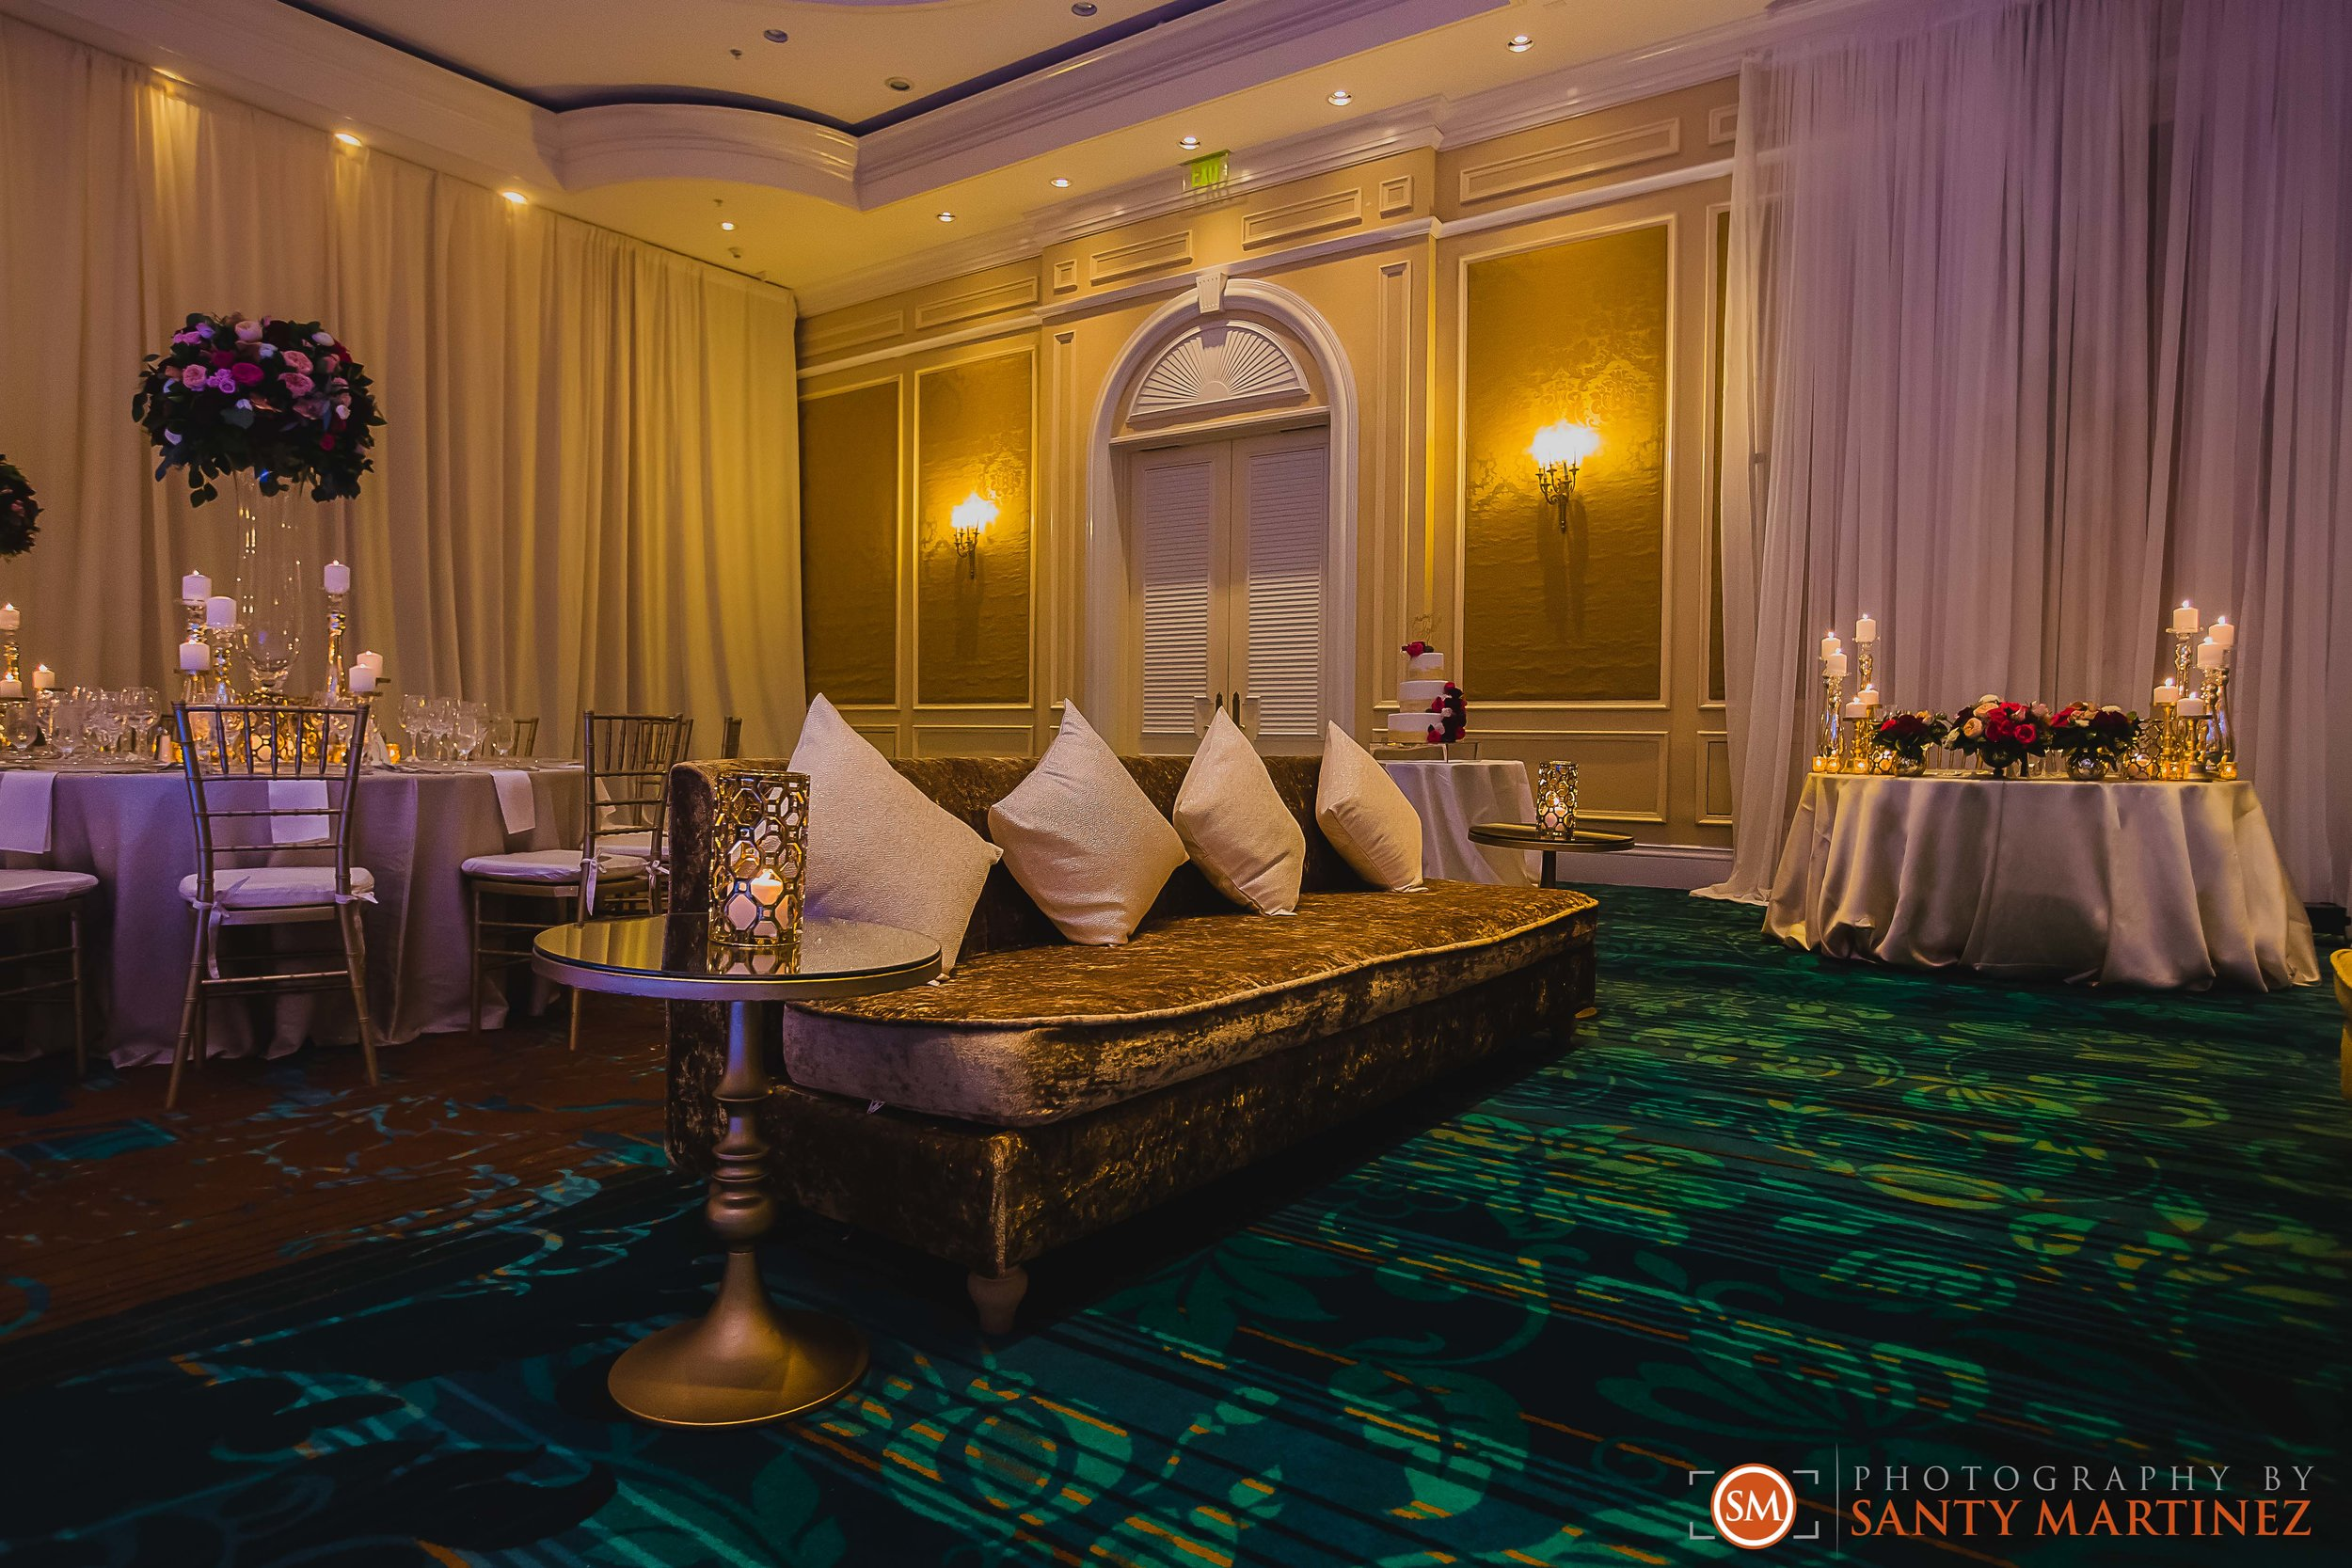 Wedding Ritz Carlton Coconut Grove - Santy Martinez-30.jpg